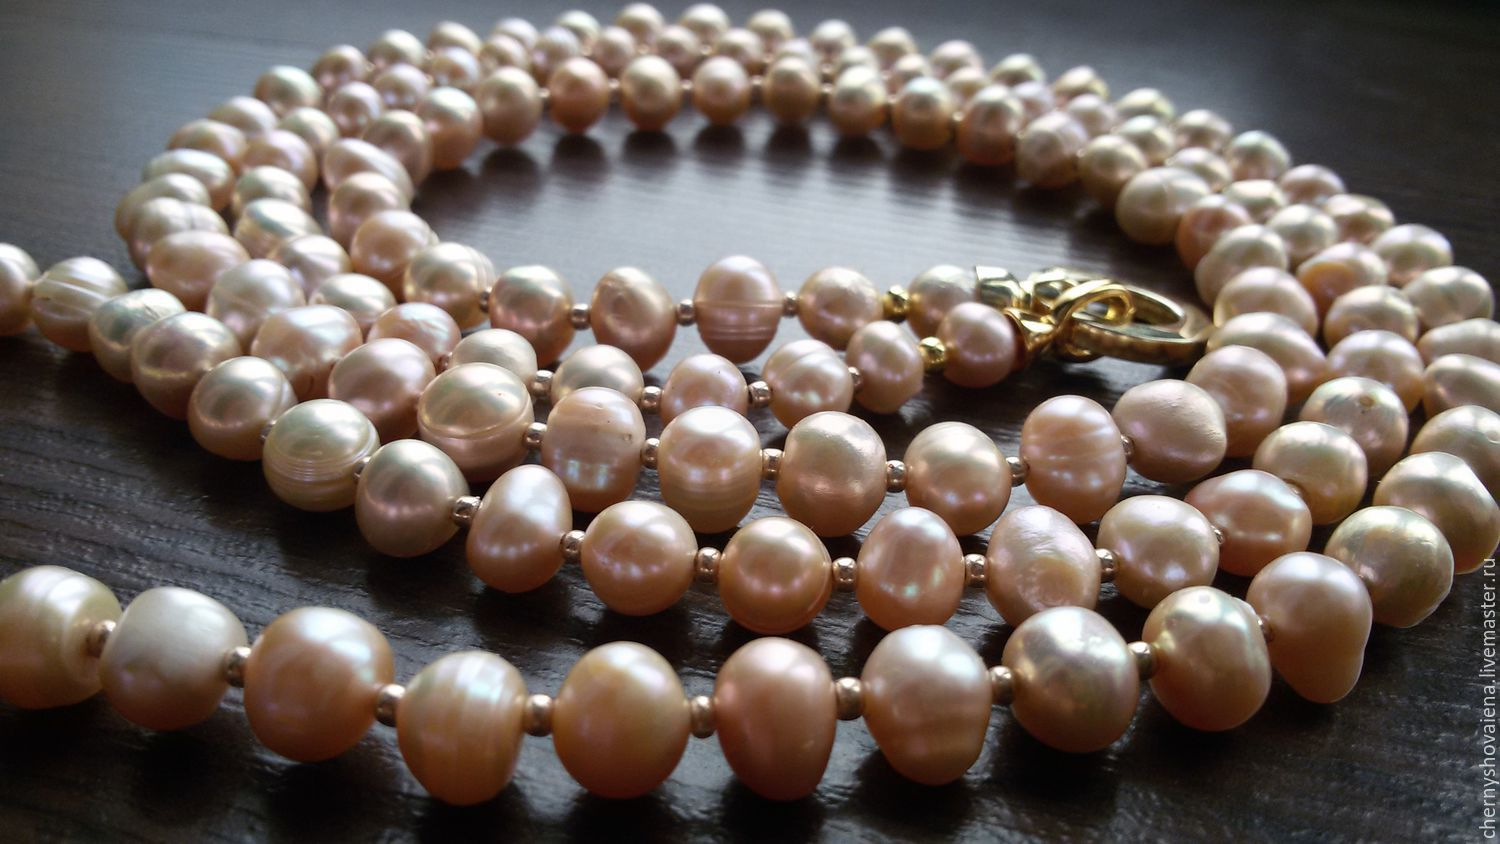 shop jewellery grafoli cream shipping shopping item necklace my pearl with livemaster pearls online on